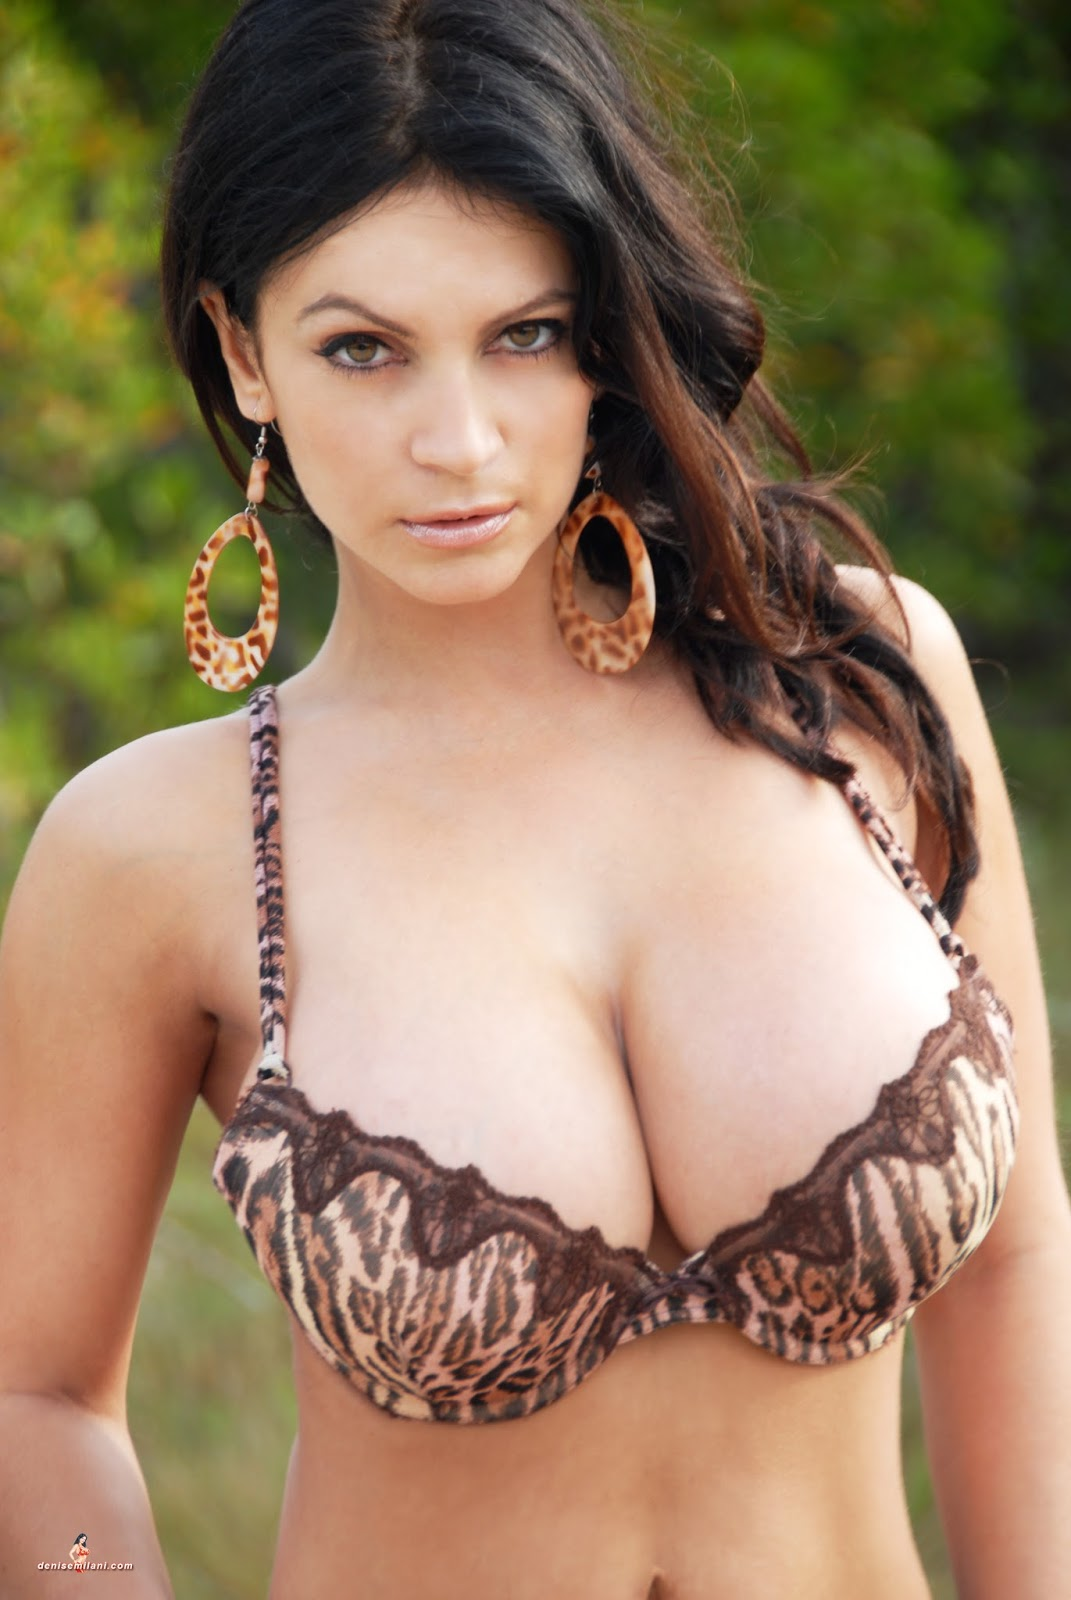 Big titts video nude movies